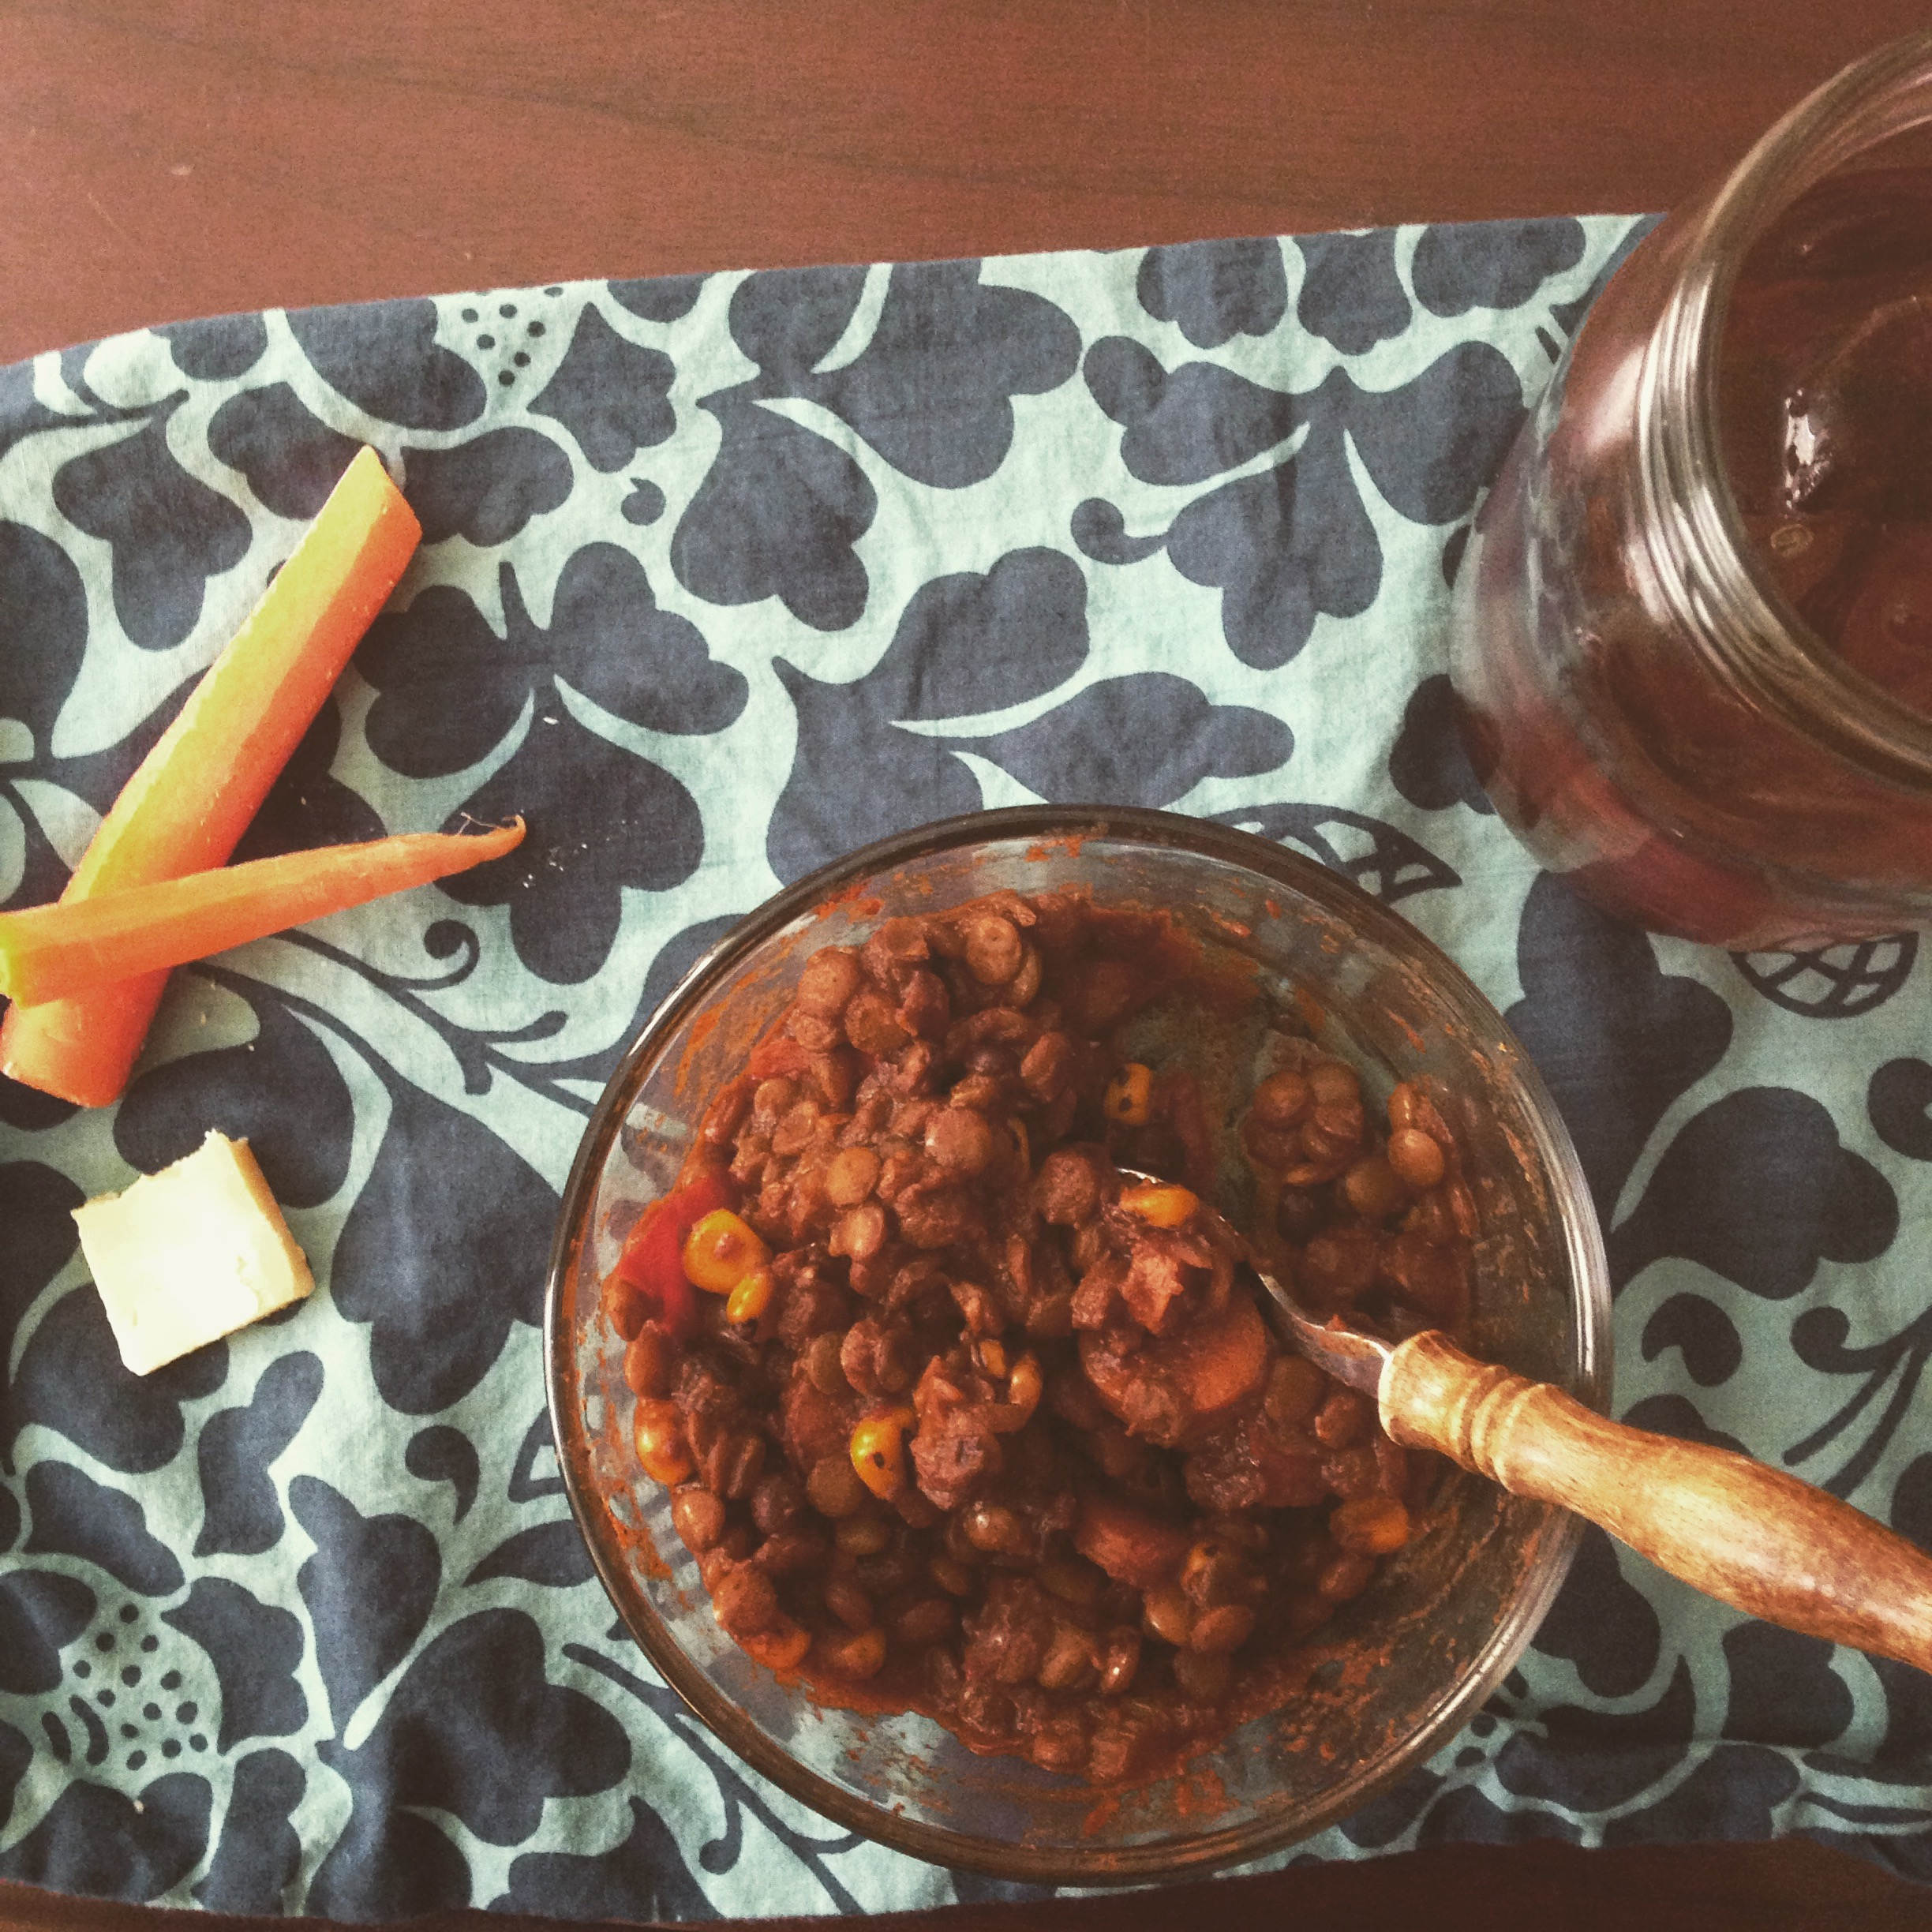 This veggie-lentil chili was so good I turned it into takeout and carried it to work with me the next day.